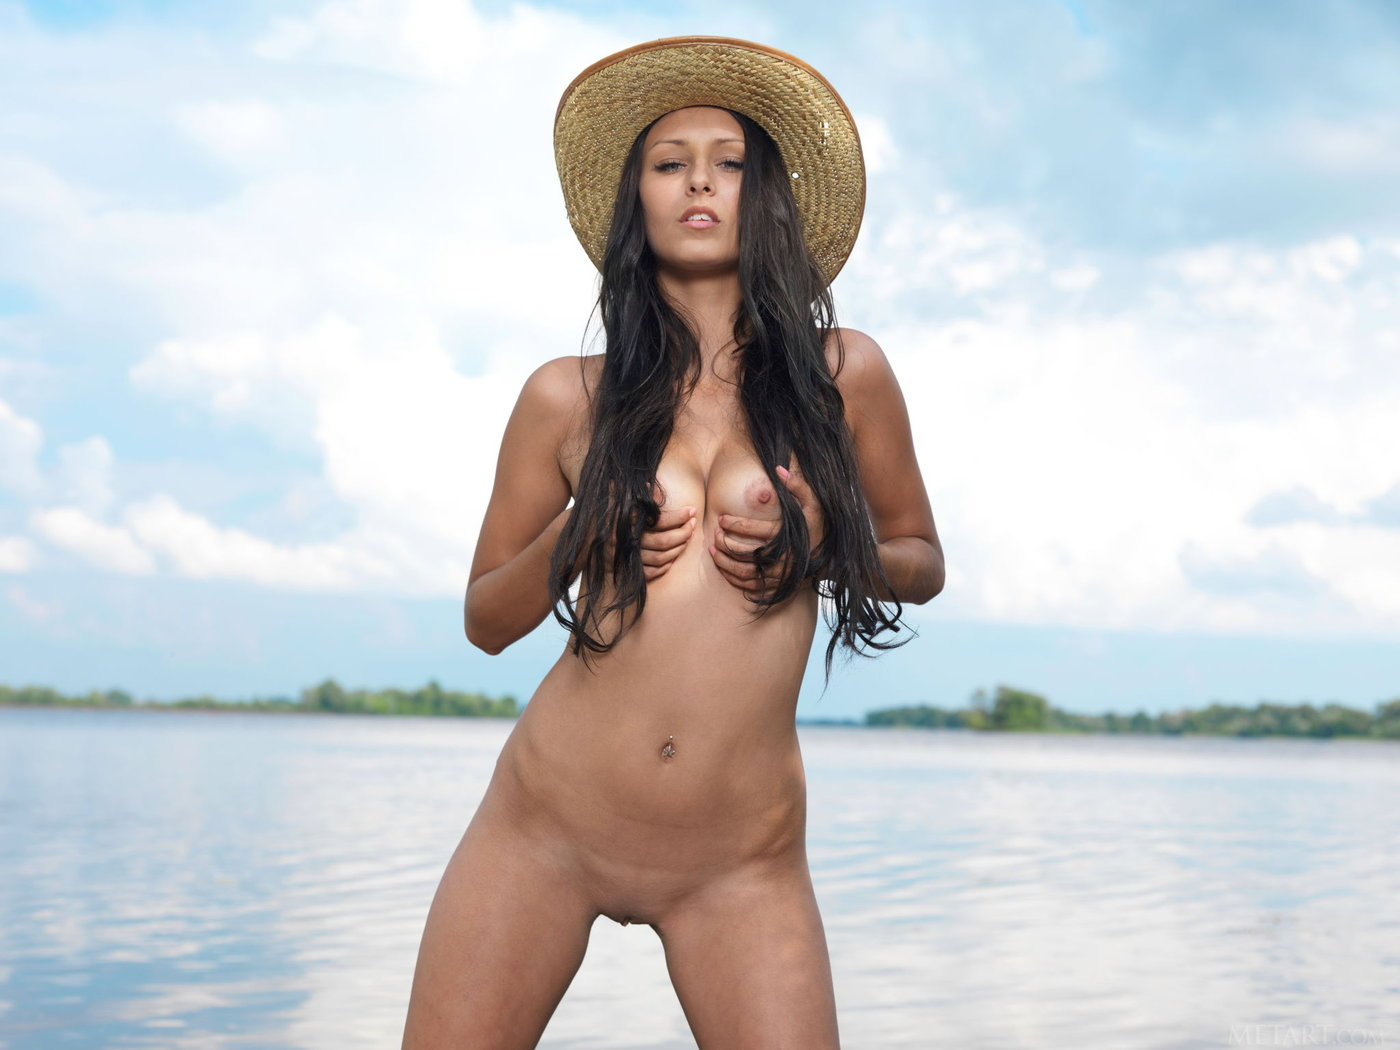 hat-wearing dark-haired hottie shows that juicy pussy on a beach